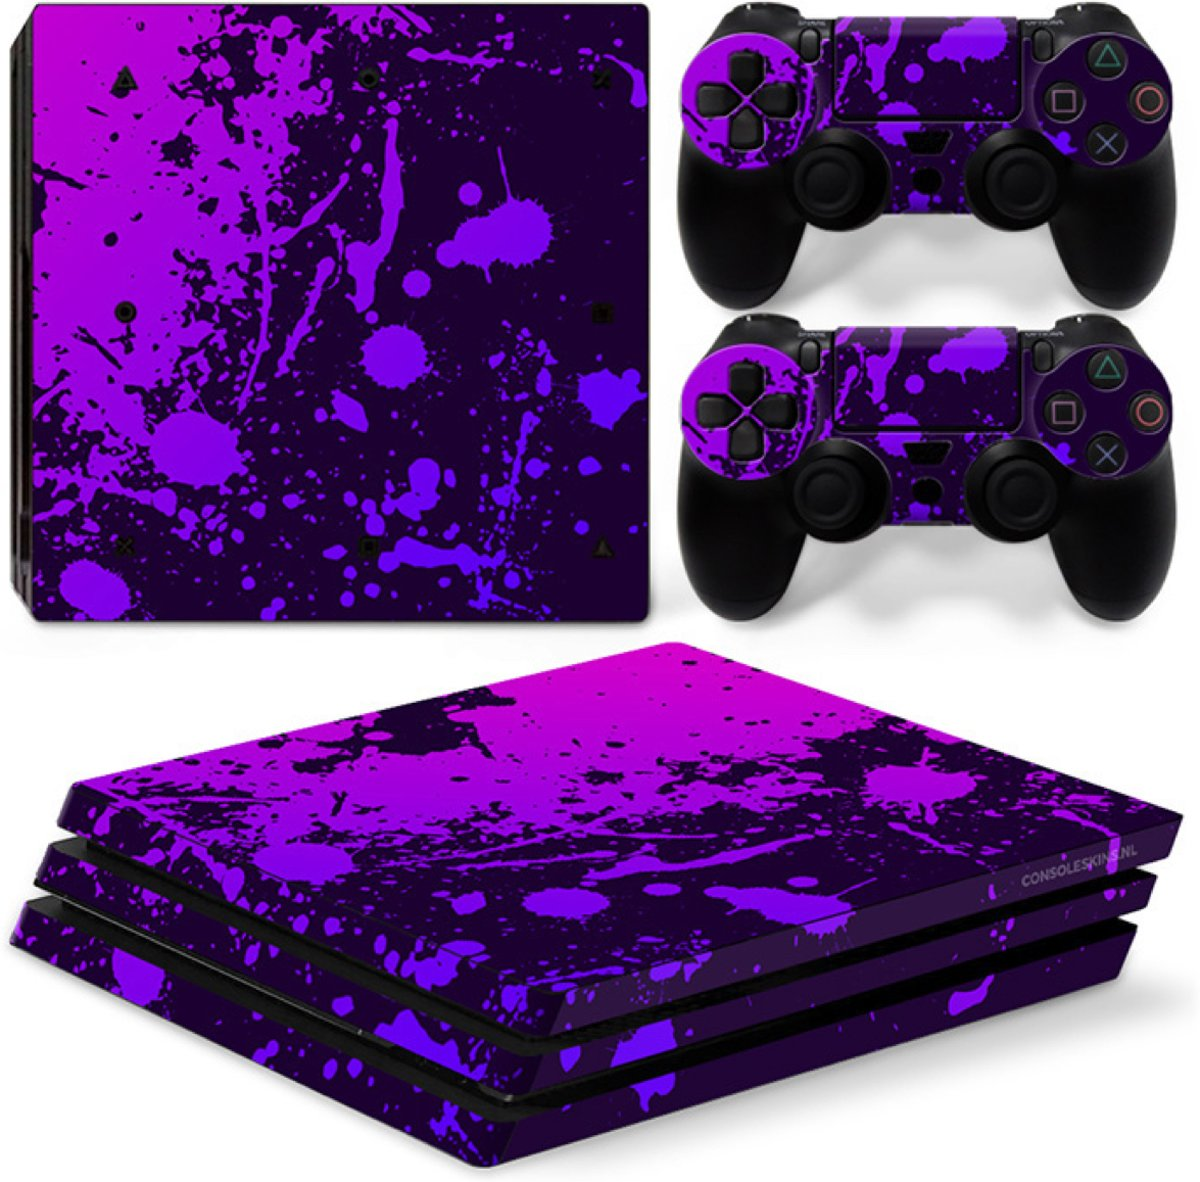 Verfspetters Zwart met Paars - PS4 Pro Console Skins PlayStation Stickers